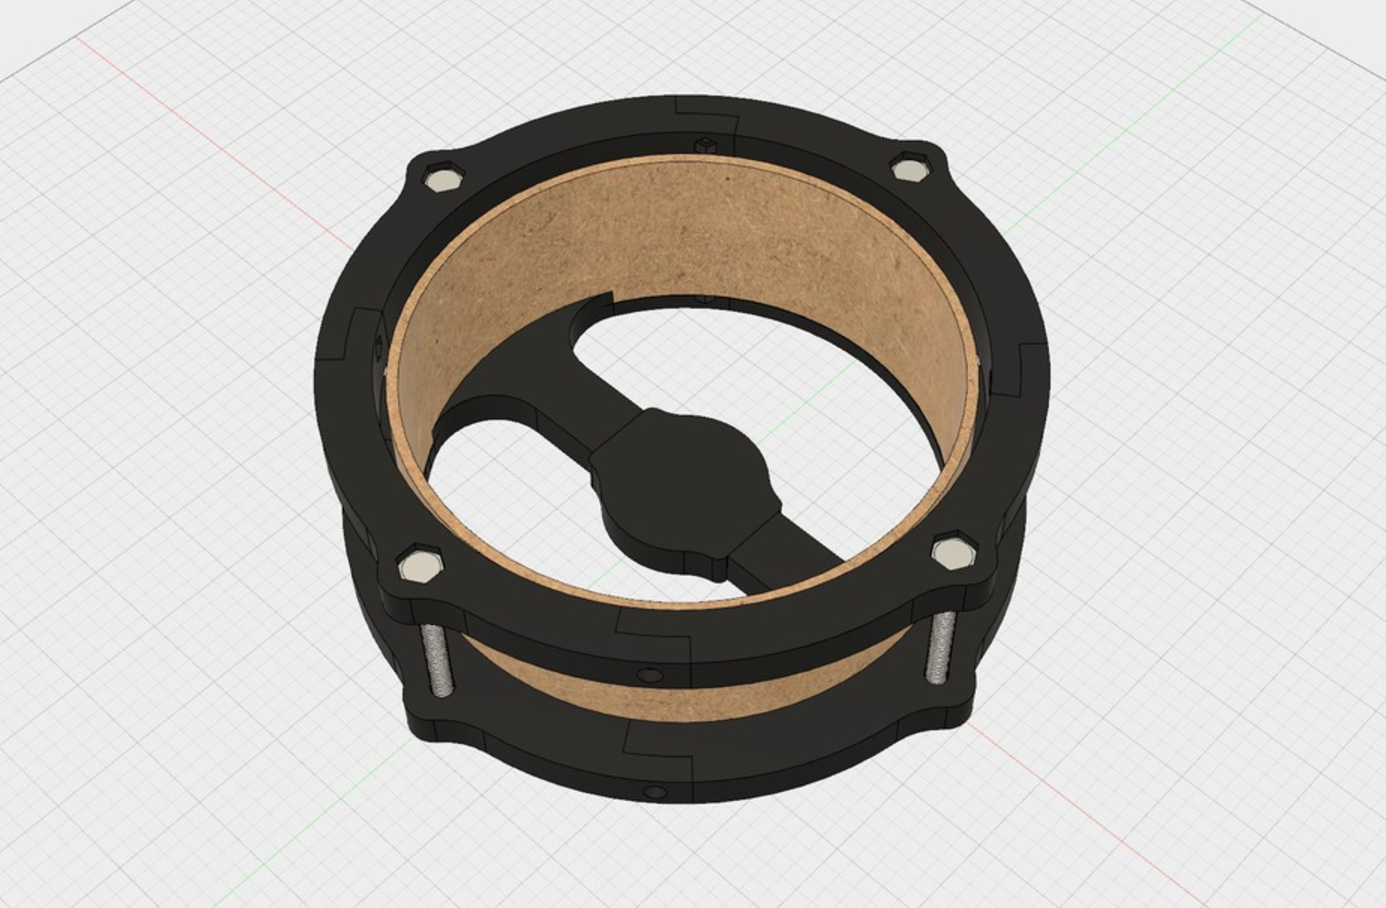 Capture d'écran 2017-08-21 à 10.57.19.png Download free STL file 6 inch e-drum pad with small 3d printer • 3D print object, RyoKosaka